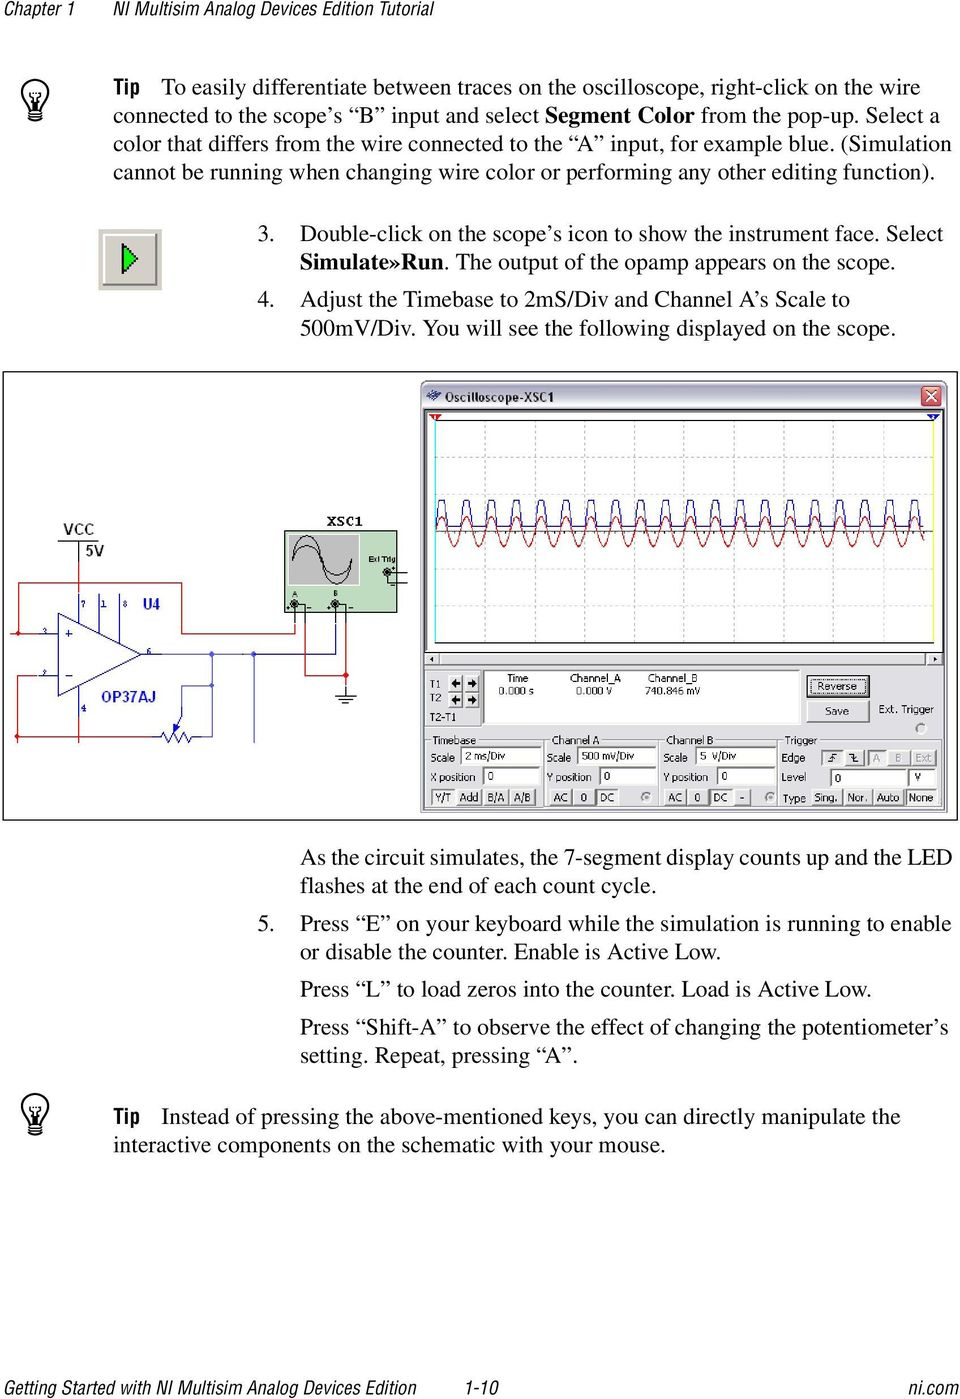 Ni Multisim Analog Devices Edition Pdf Counter Using 7 Segment Display Public Circuit Online Double Click On The Scope S Icon To Show Instrument Face Select Simulate